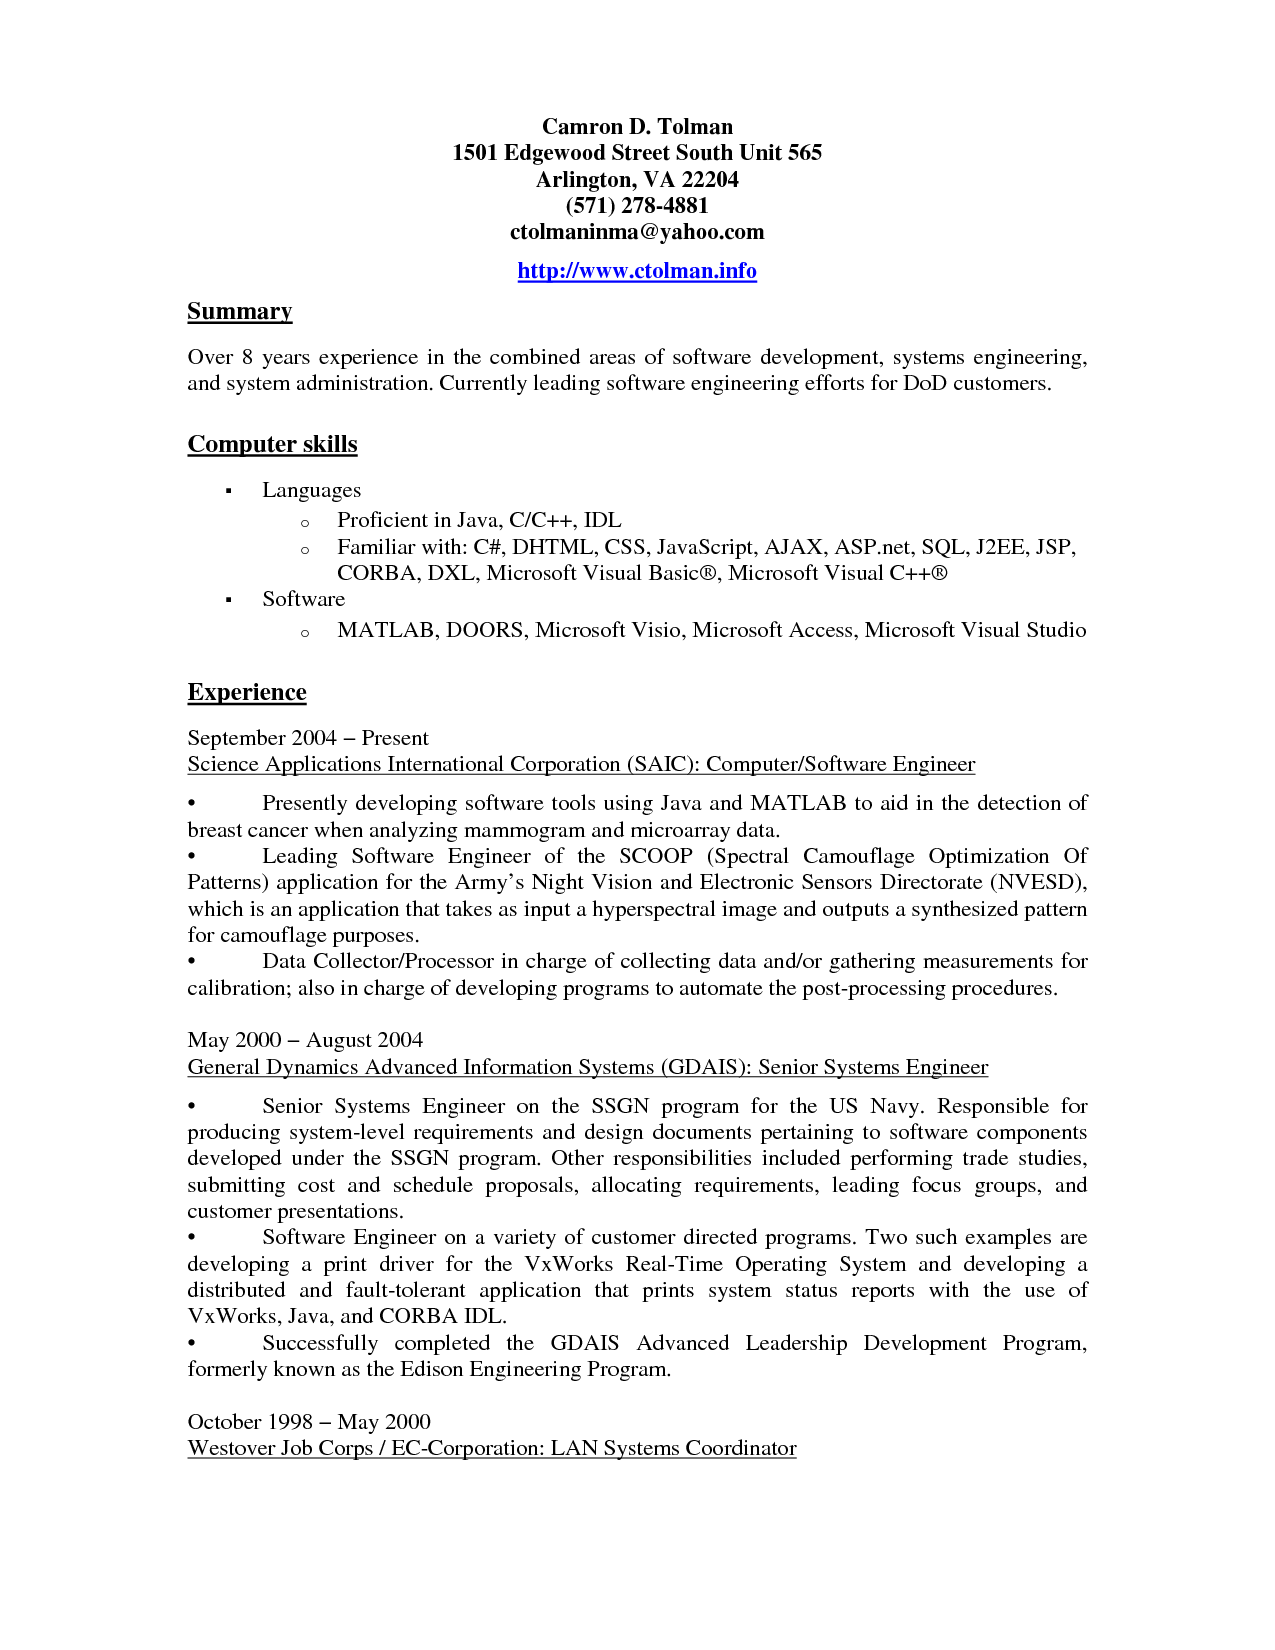 Resume Summary Examples Computer Proficiency Resume Sample  Httpwwwresumecareer